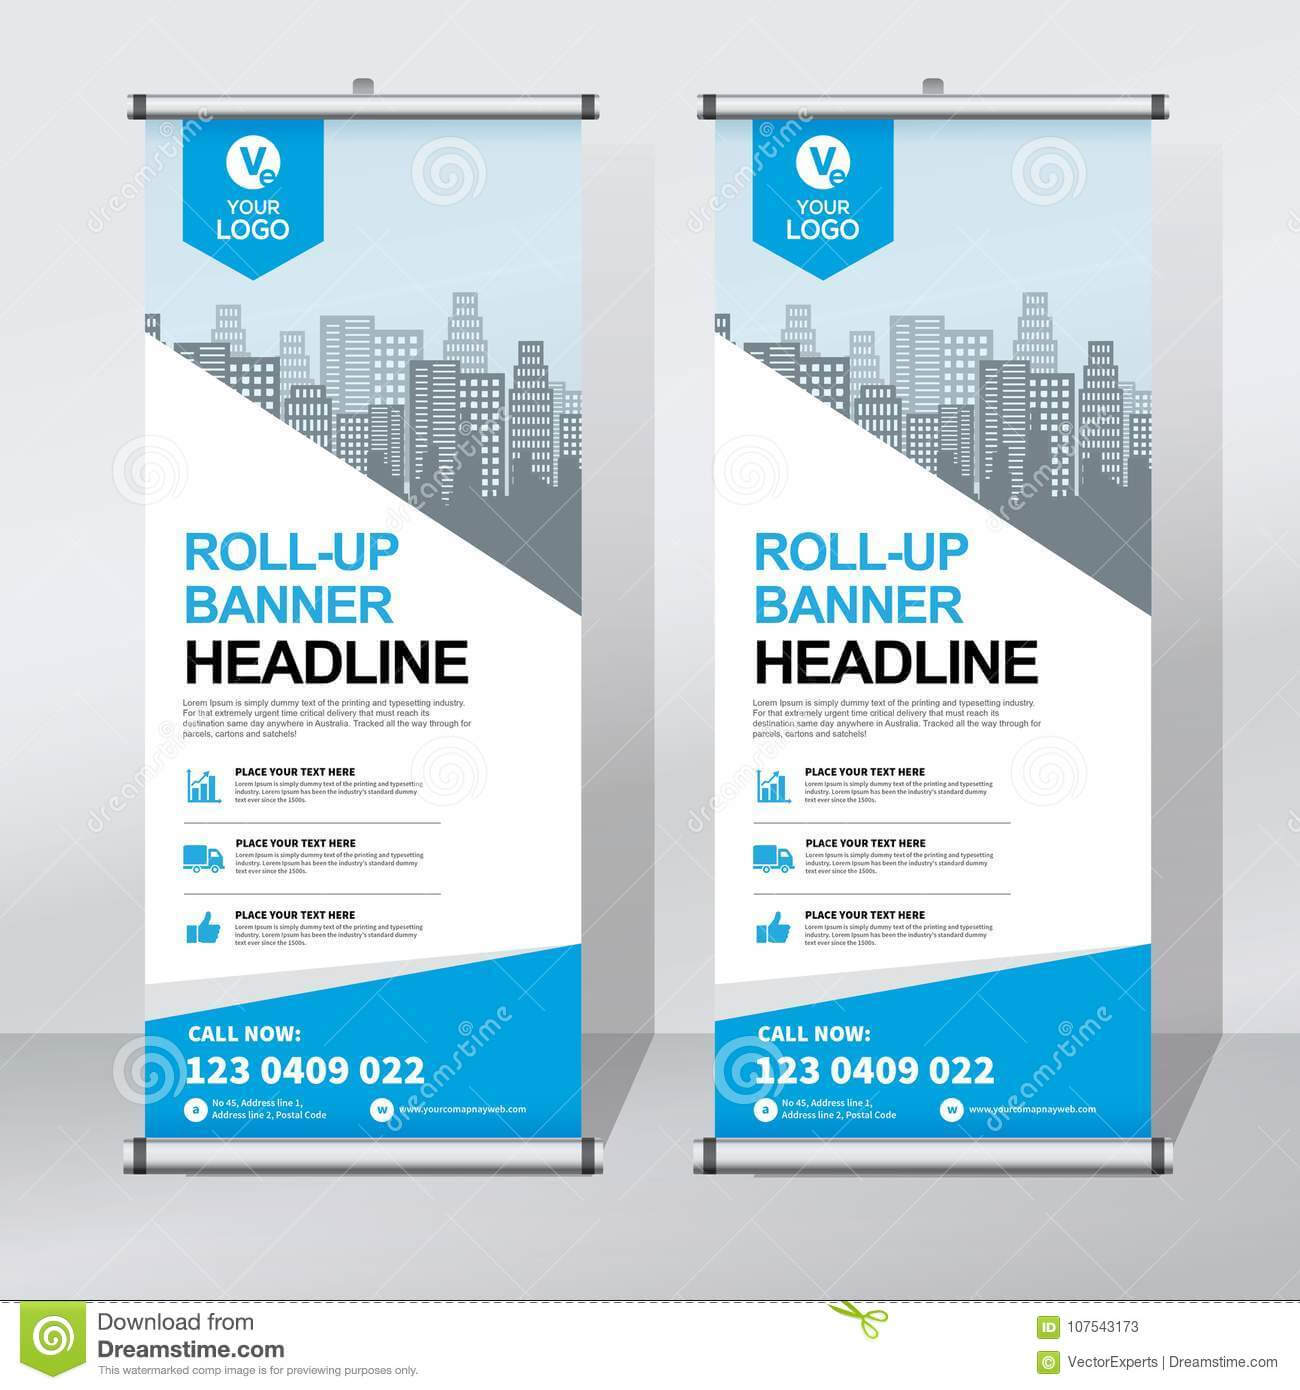 Roll Up Banner Design Template, Vertical, Abstract Pertaining To Pop Up Banner Design Template